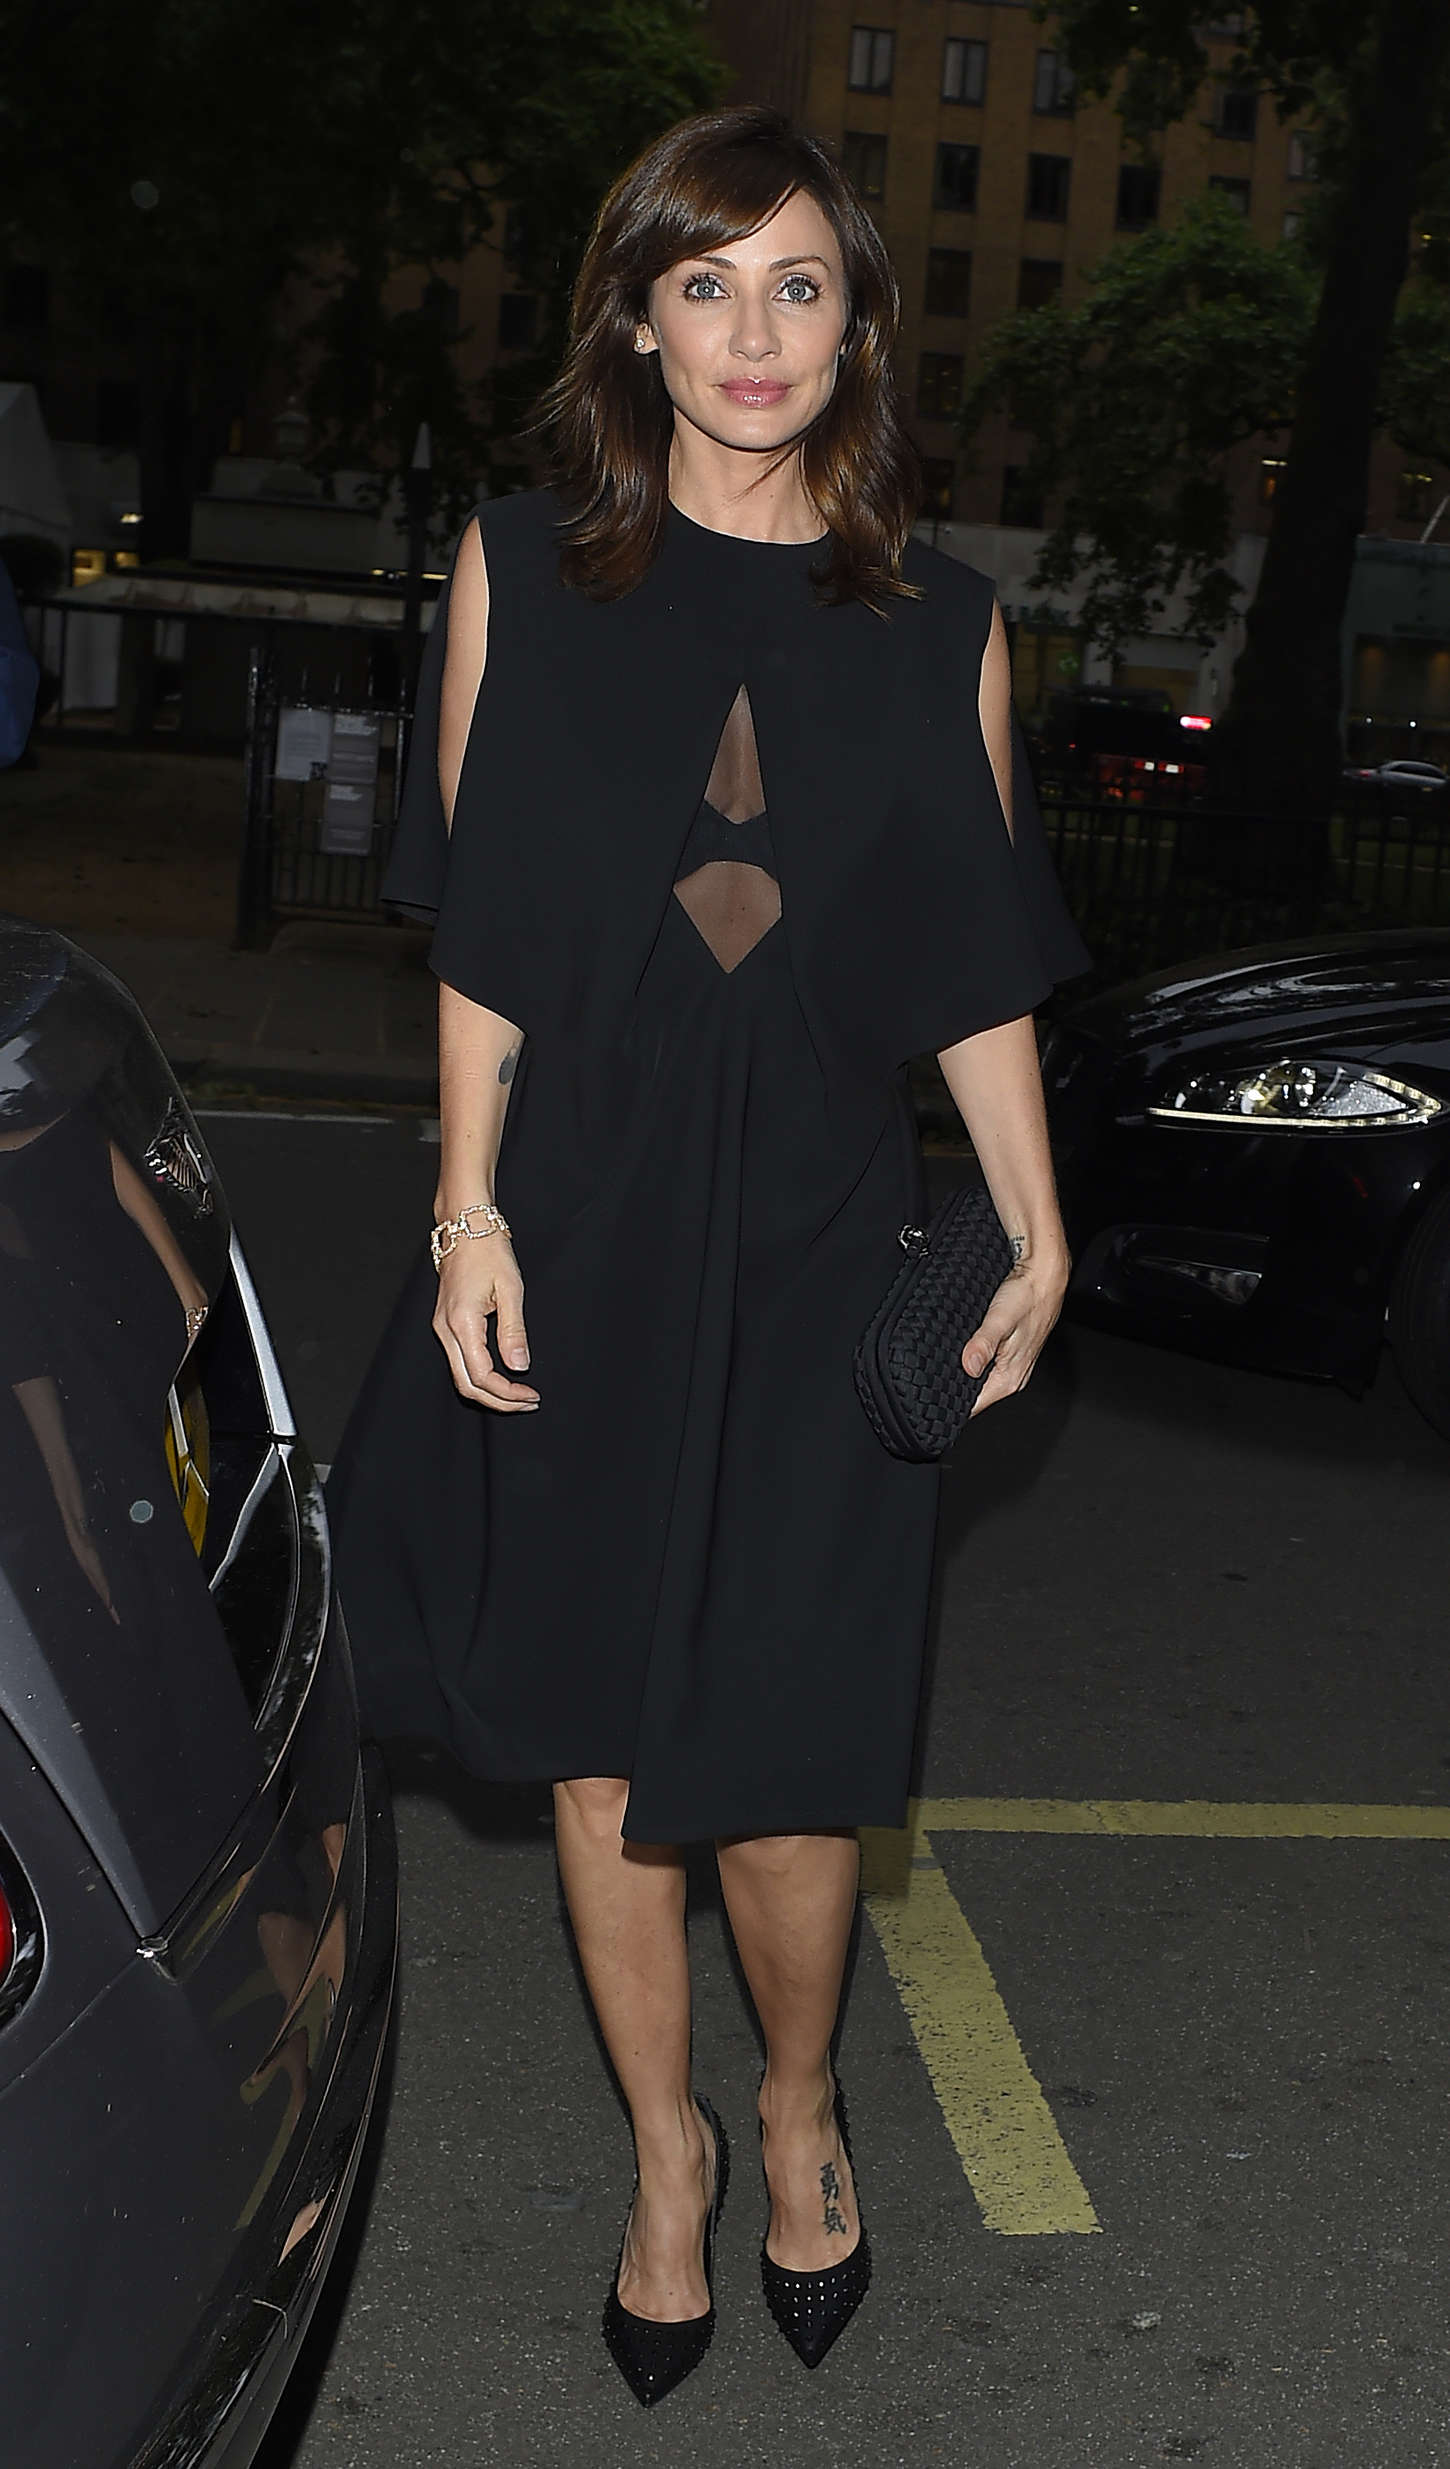 Natalie Imbruglia Annual Hawn Foundation UK Fundraising Dinner in London